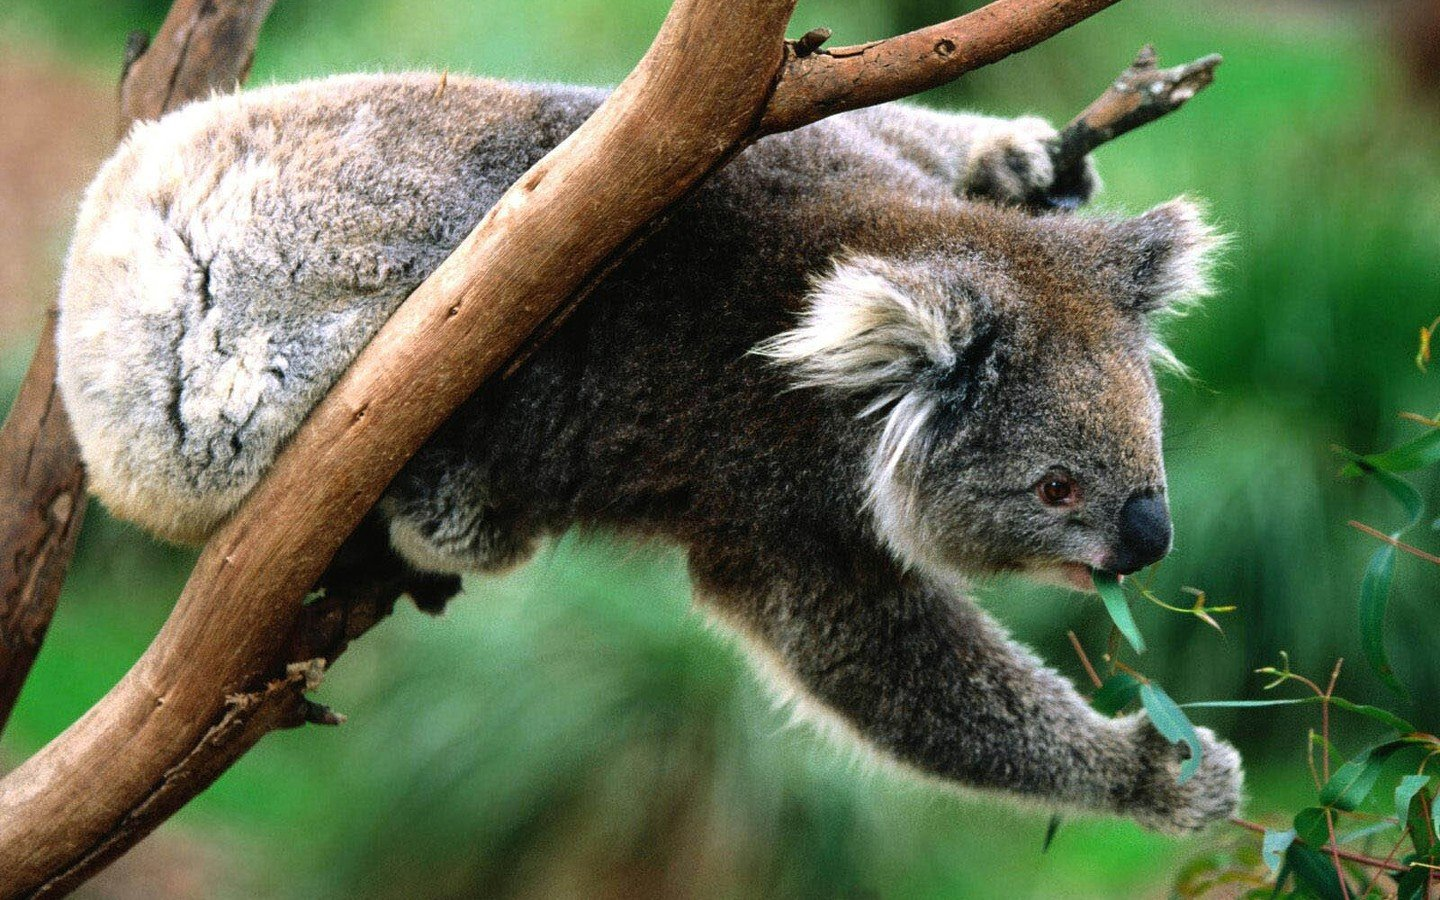 Free Koala high quality wallpaper ID:74260 for hd 1440x900 desktop